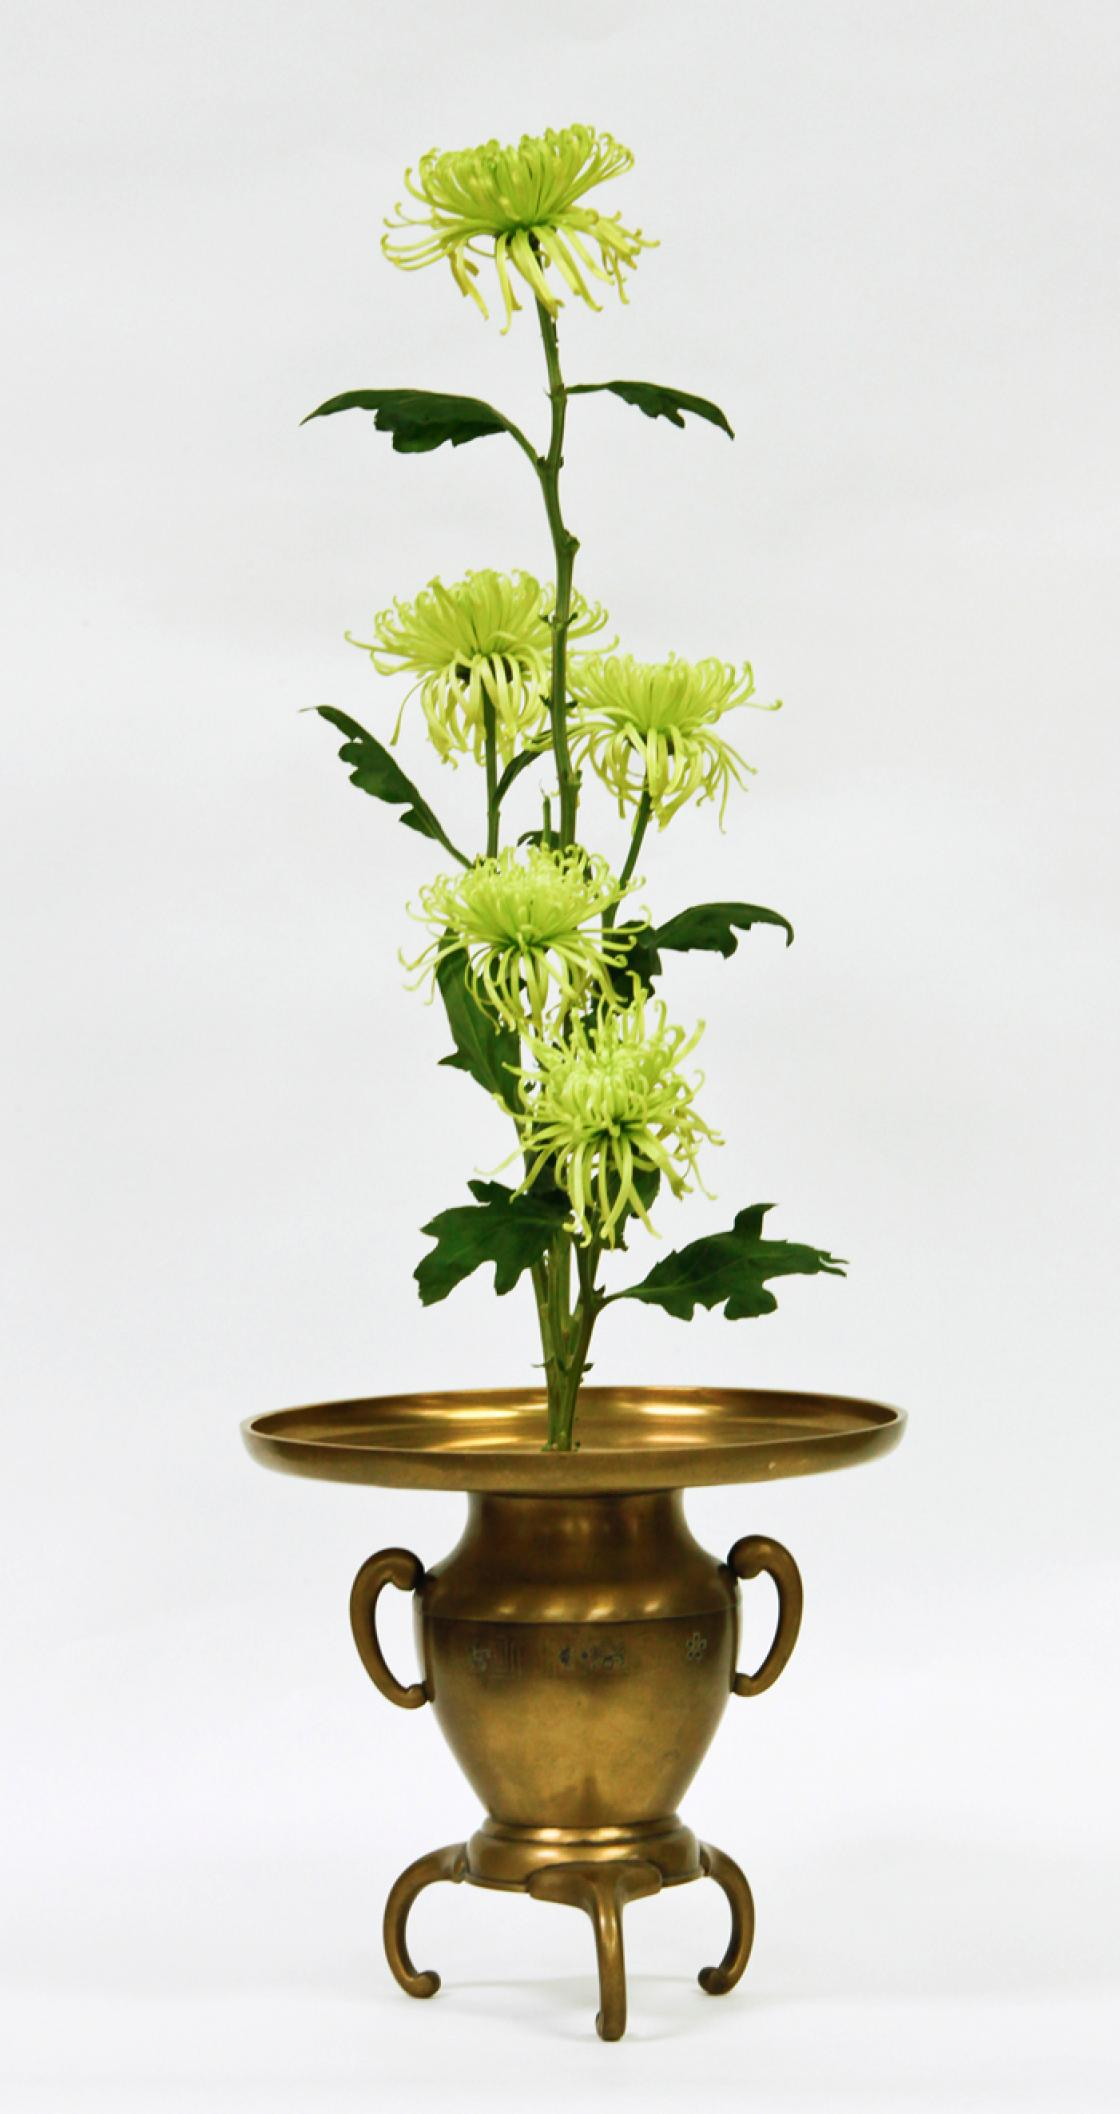 Ikebana arrangement featuring chrysanthemums